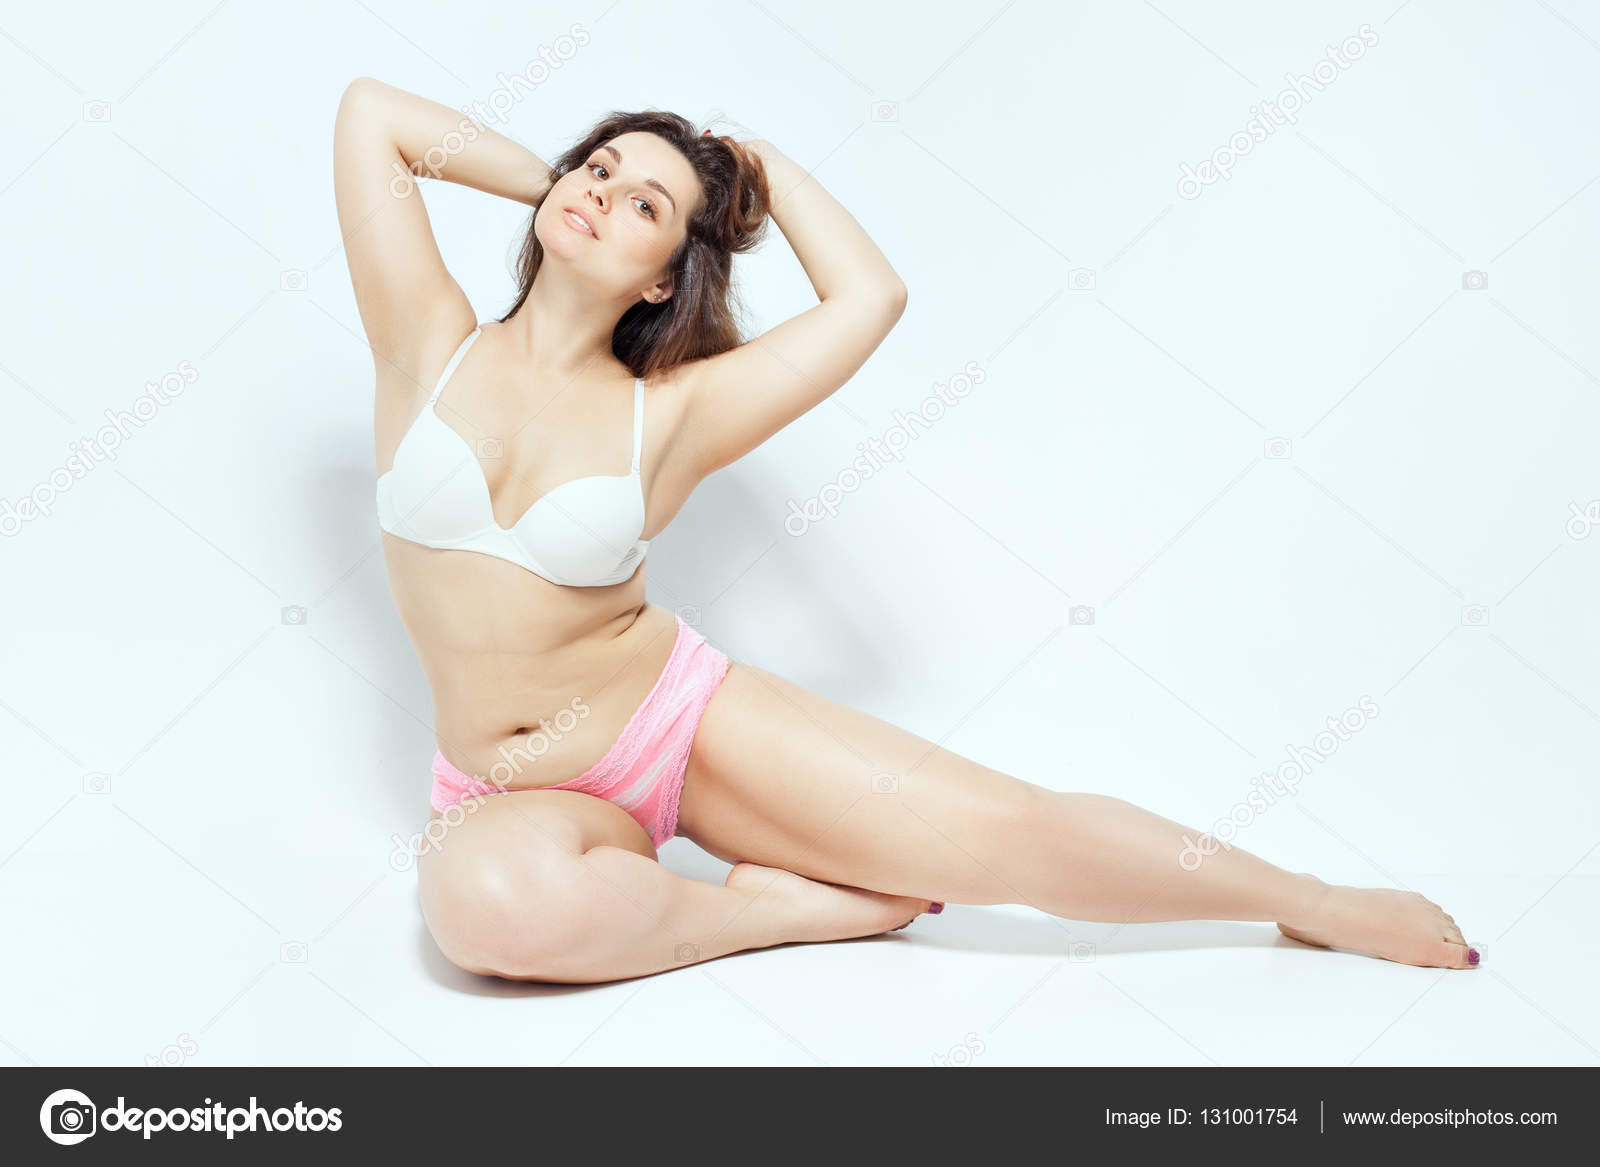 Plump girl in underwear — Stock Photo © Silkstocking  131001754 3656c45fc